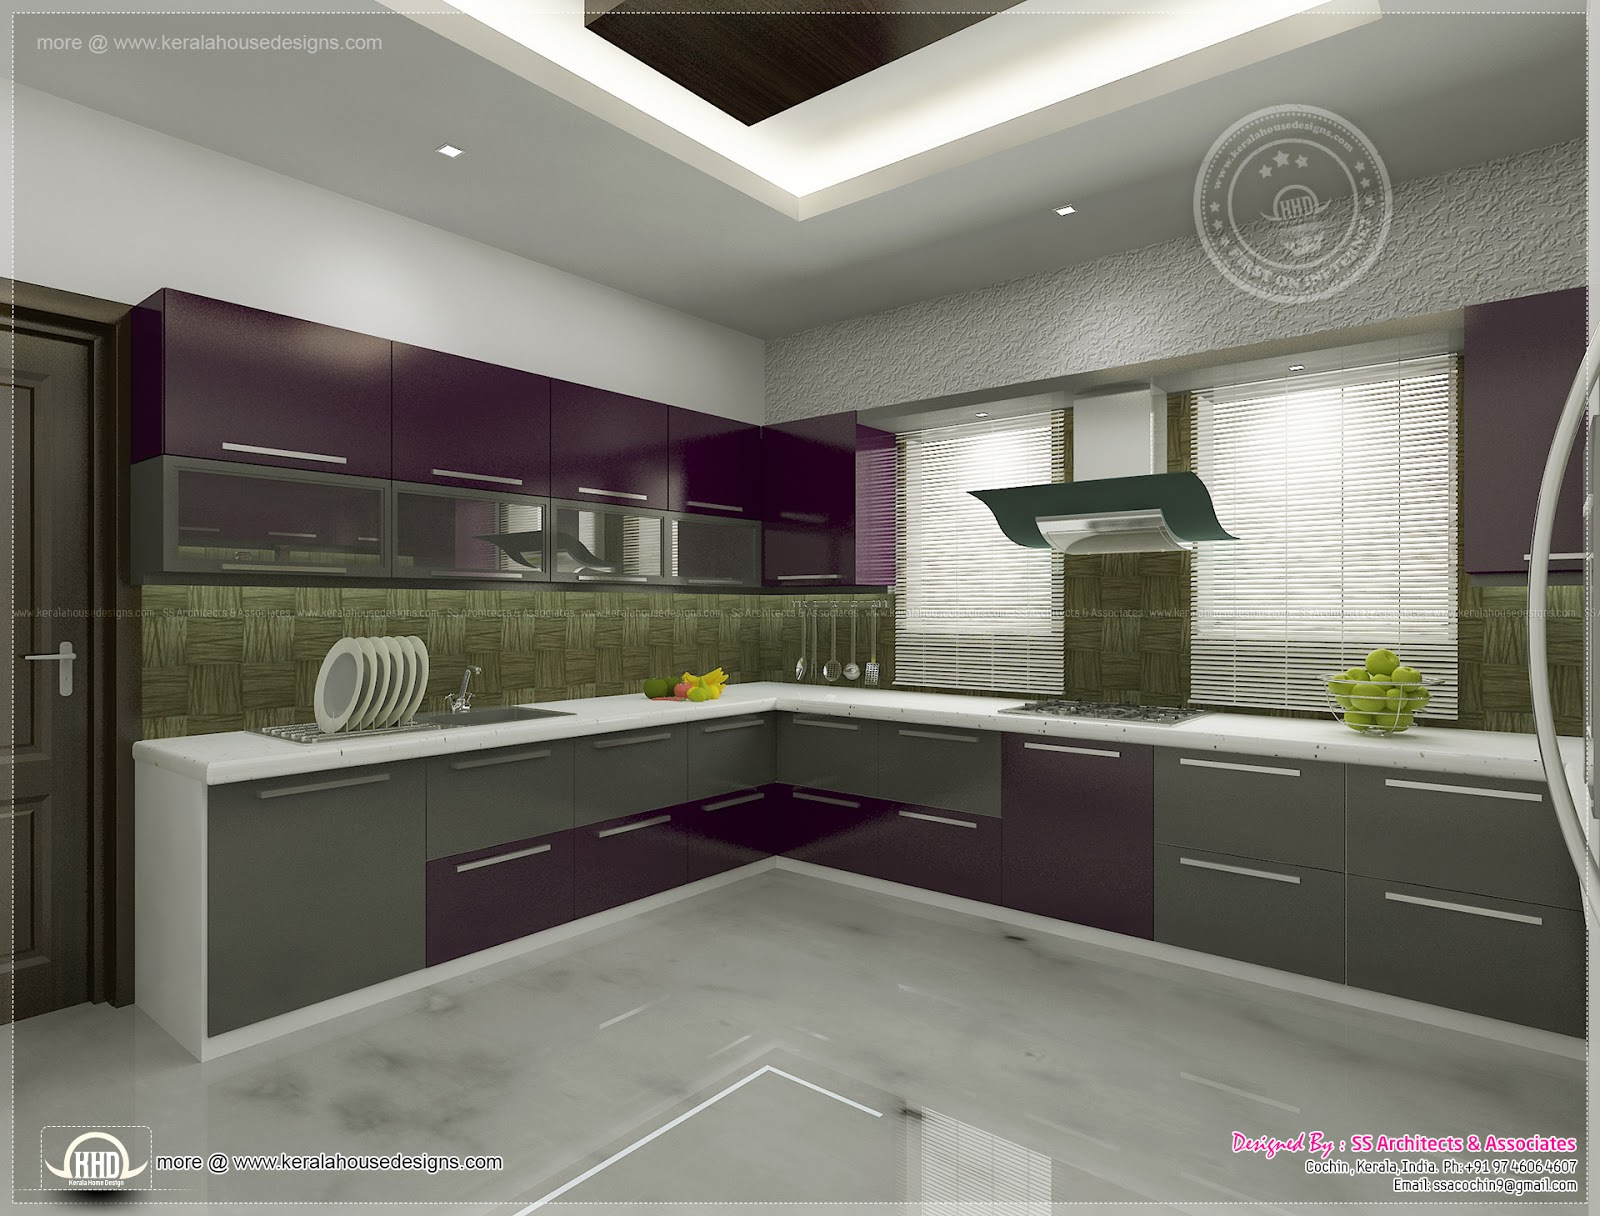 Kitchen interior views by ss architects cochin kerala for Design homes interior